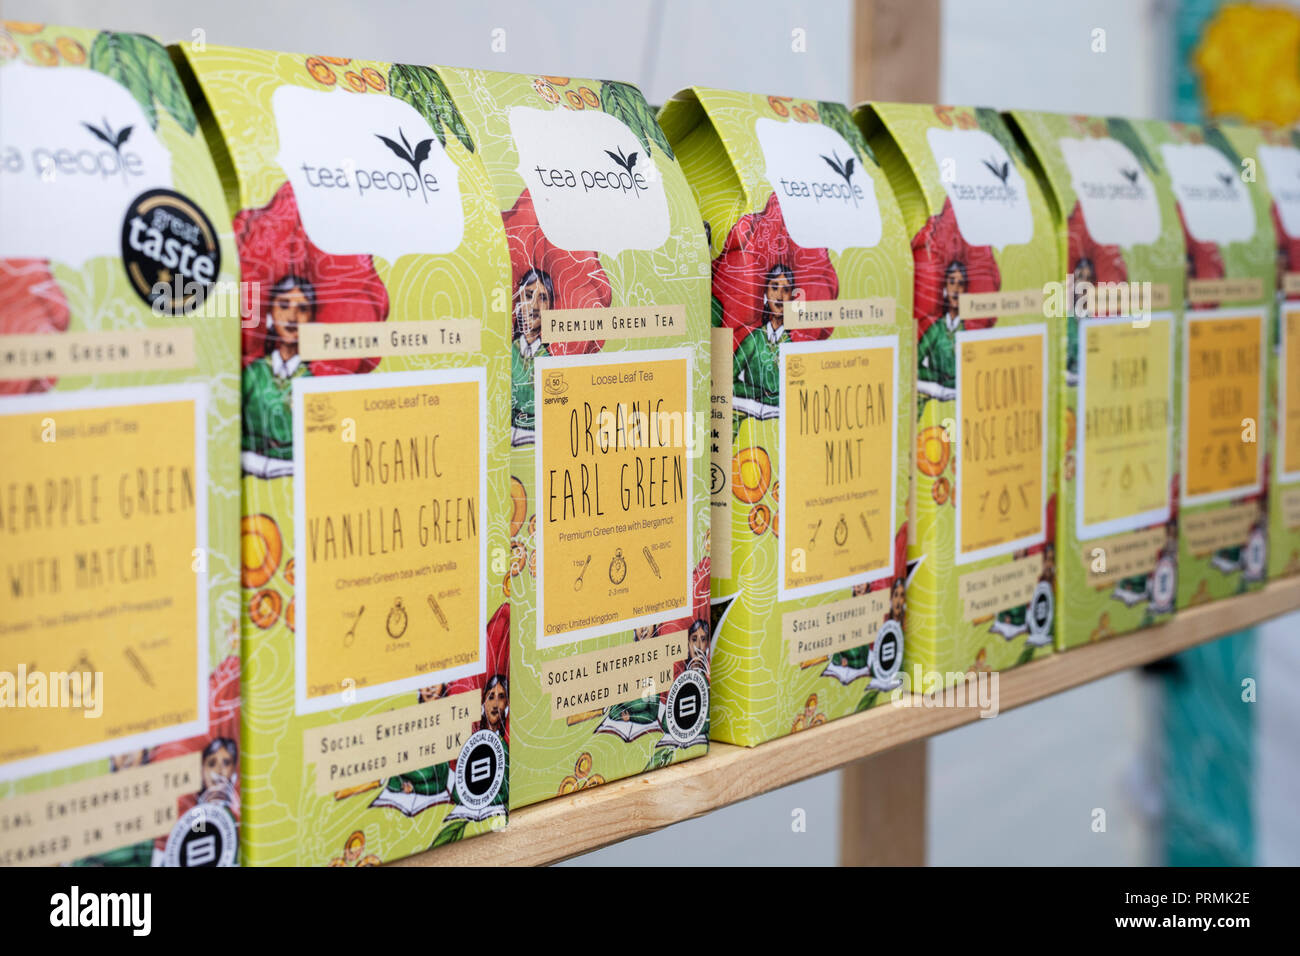 Green Tea variety packets for sale at the Thame food festival. Thame, Oxfordshire, England - Stock Image